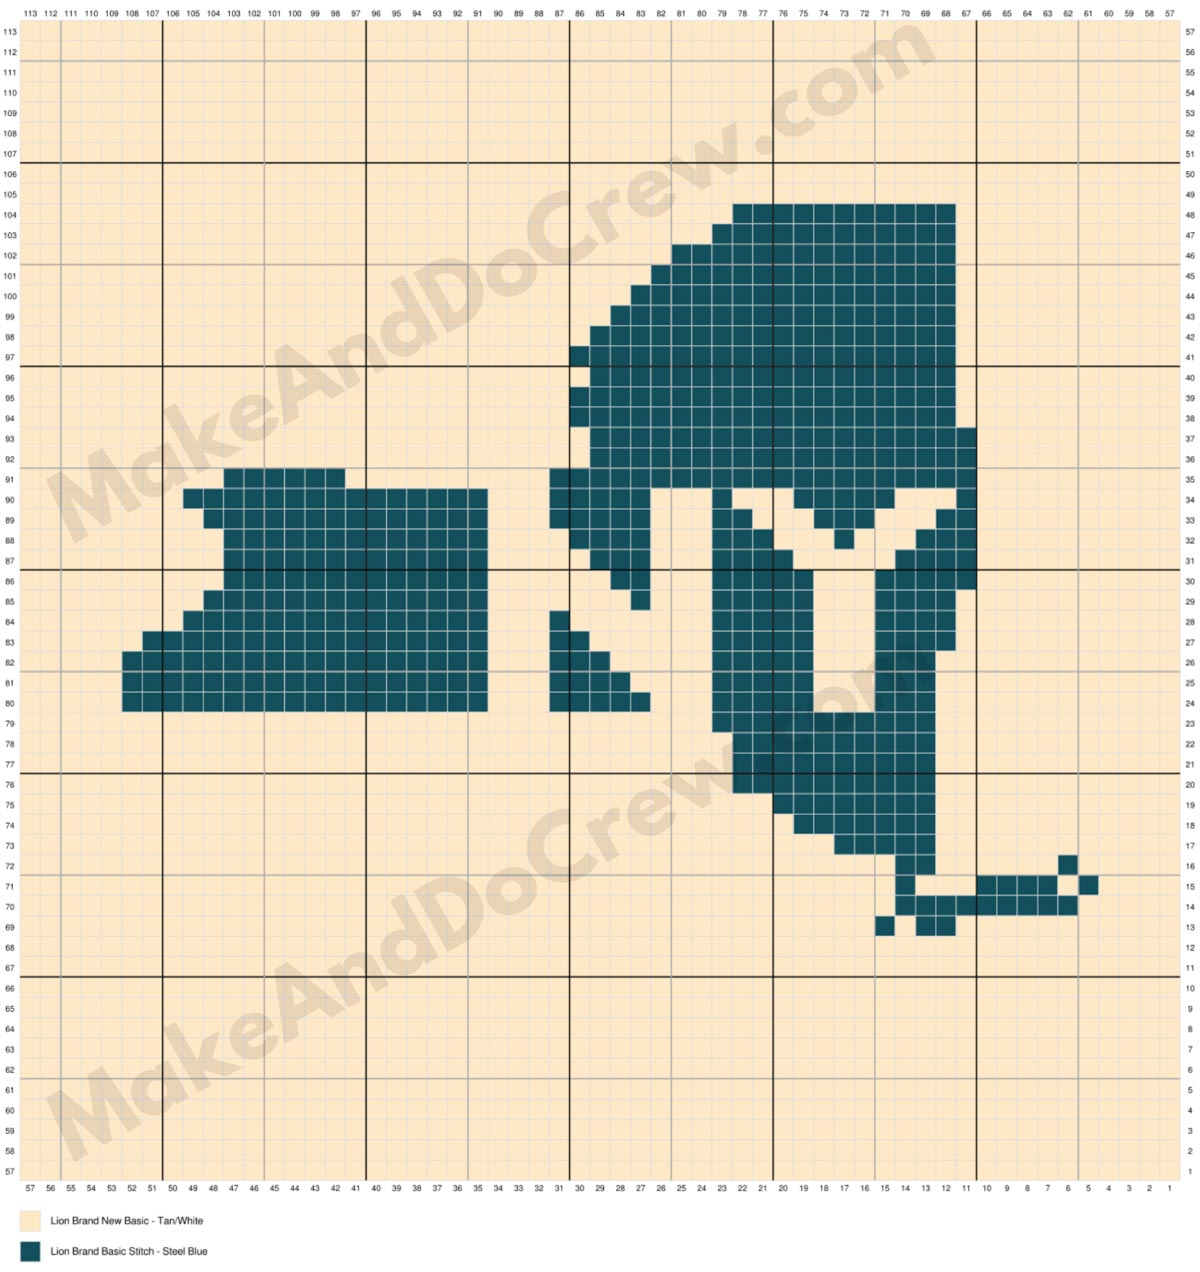 A corner to corner crochet chart showing the state of New York to be worked into a crochet afghan.